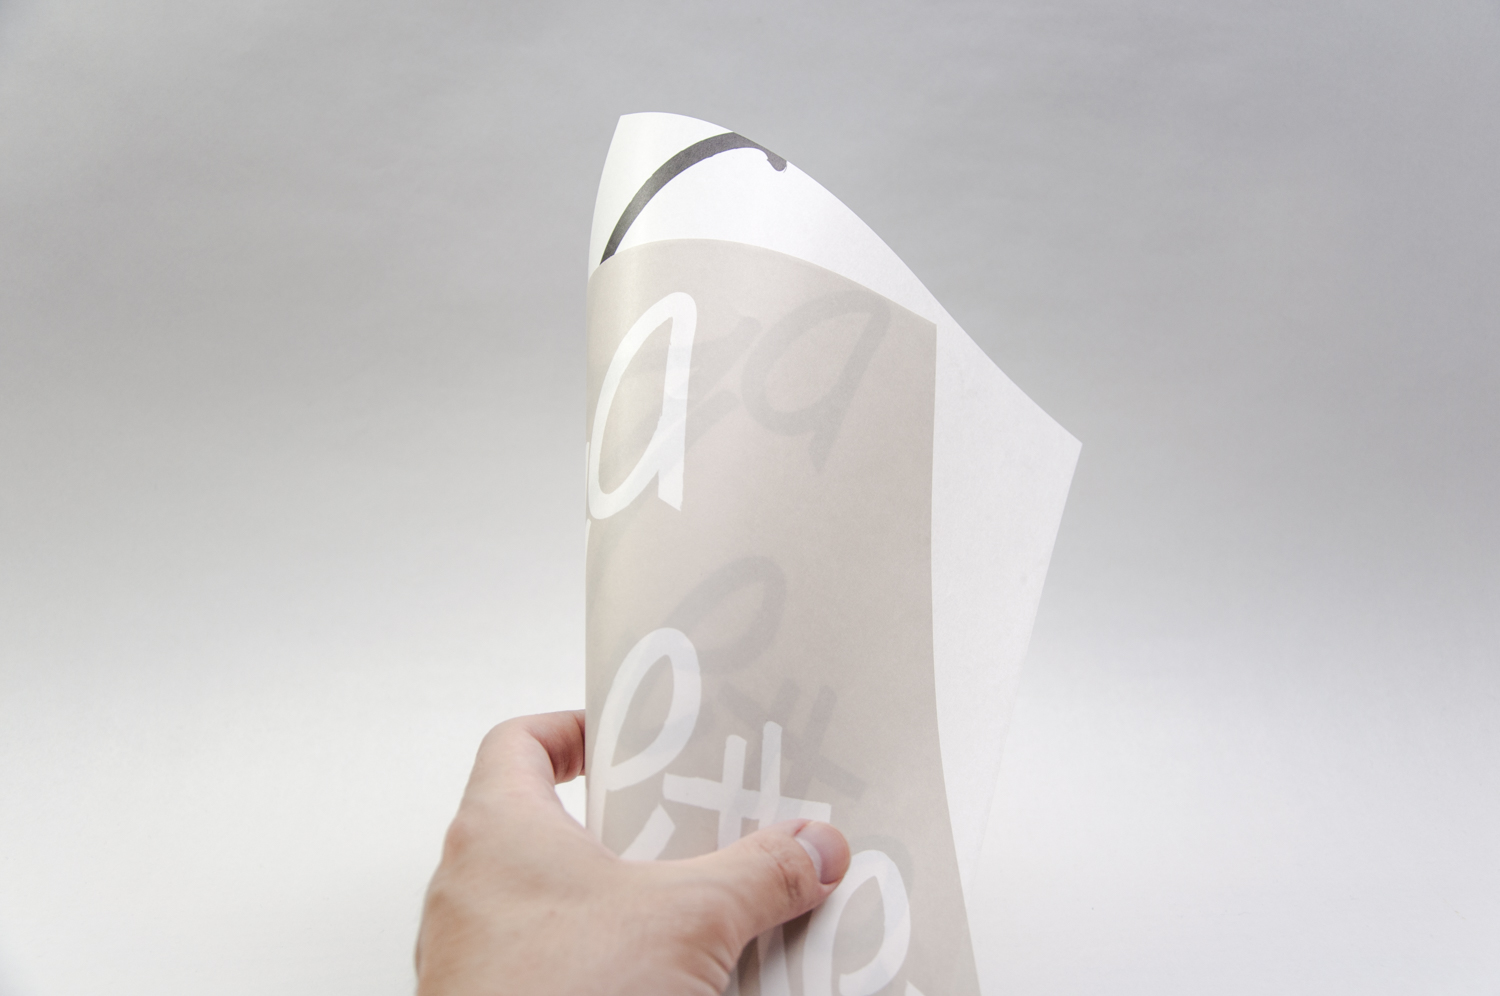 Le66 PLATABLE / Package & Wrapping